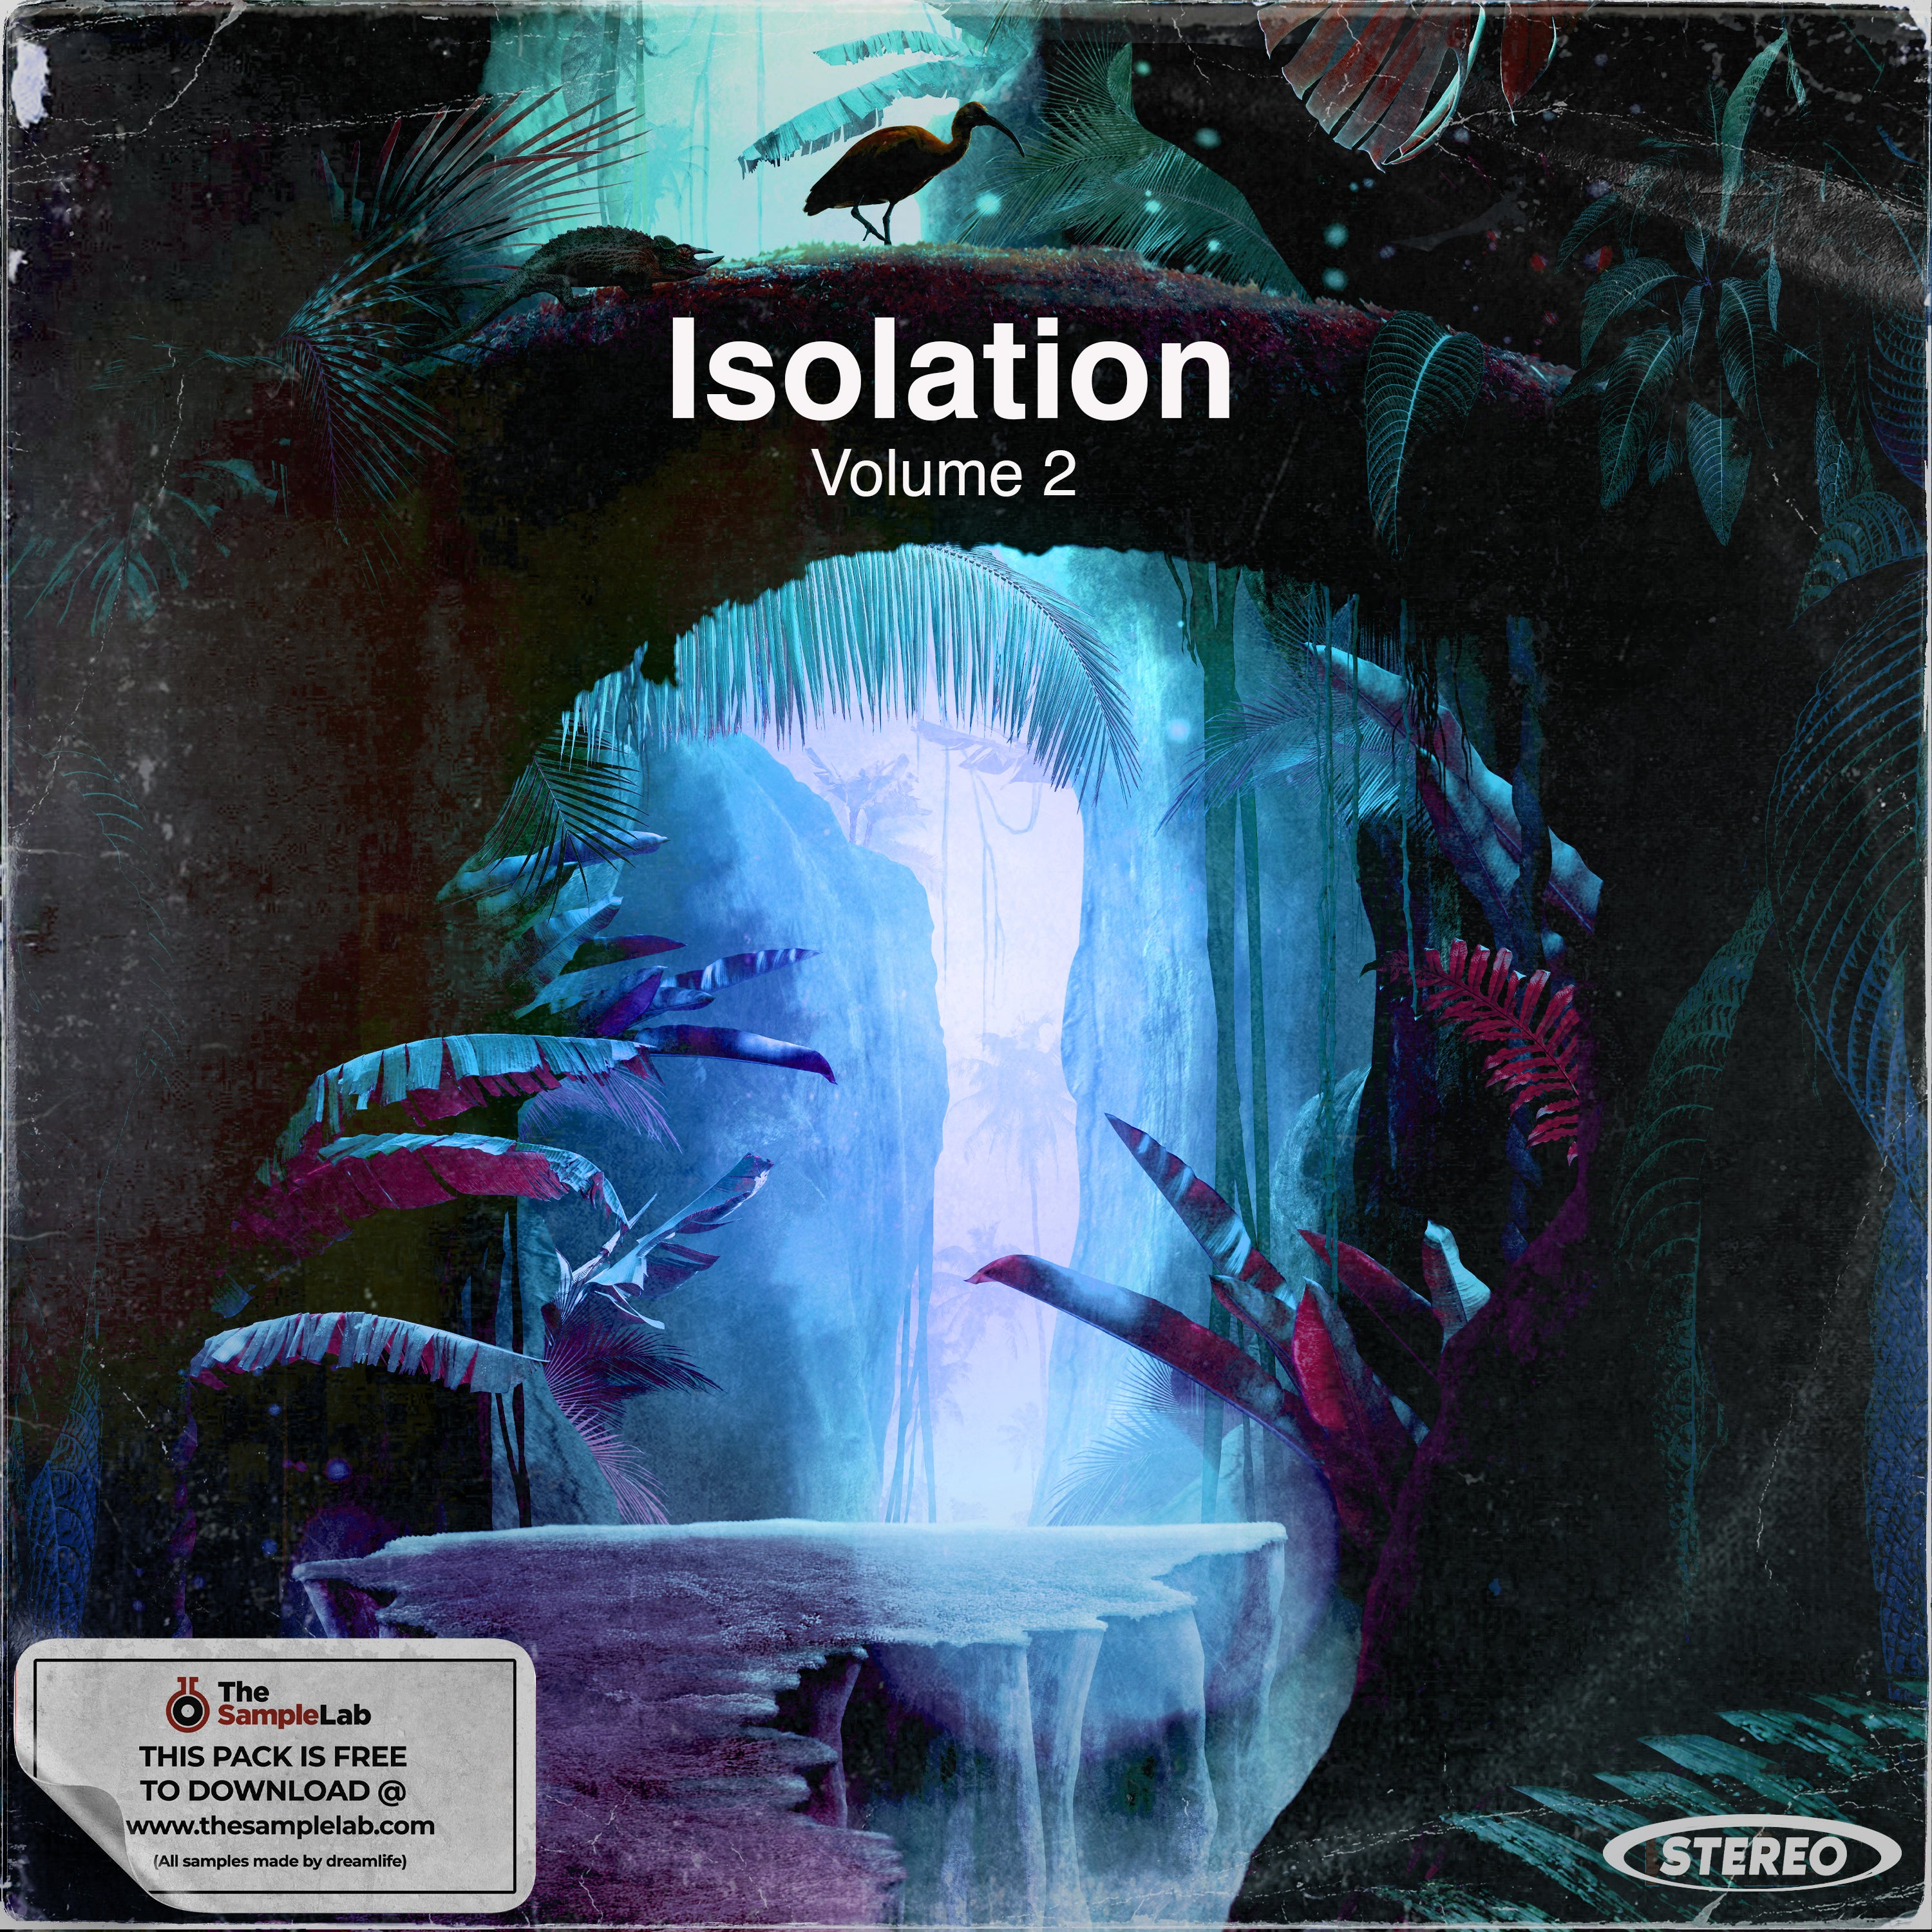 Isolation Volume 2 (Free Pack)